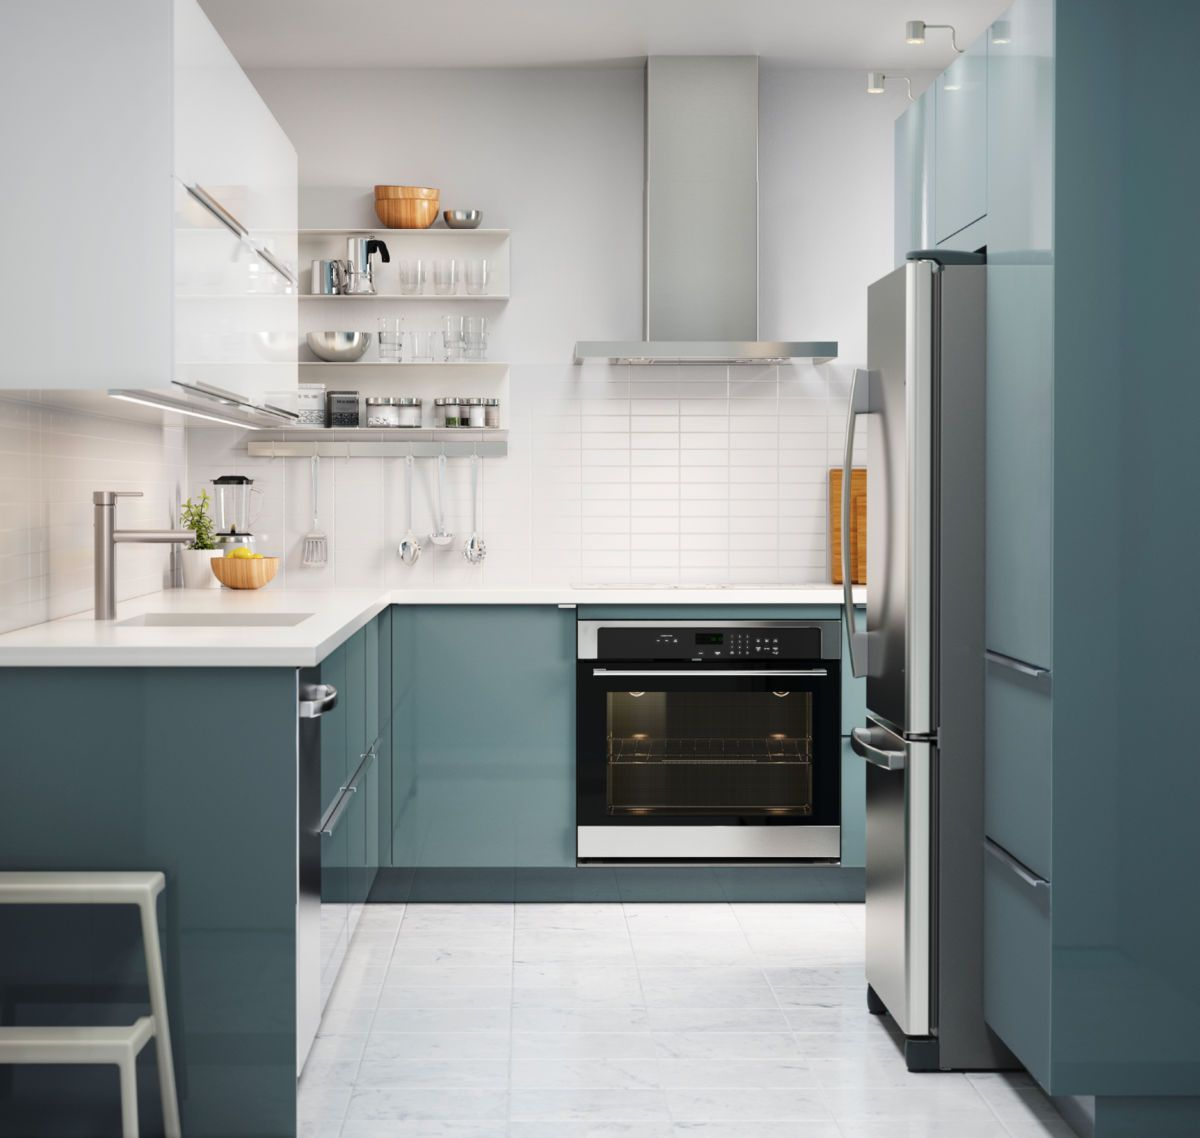 2017 Kitchens | Kitchen Ideas | Pinterest